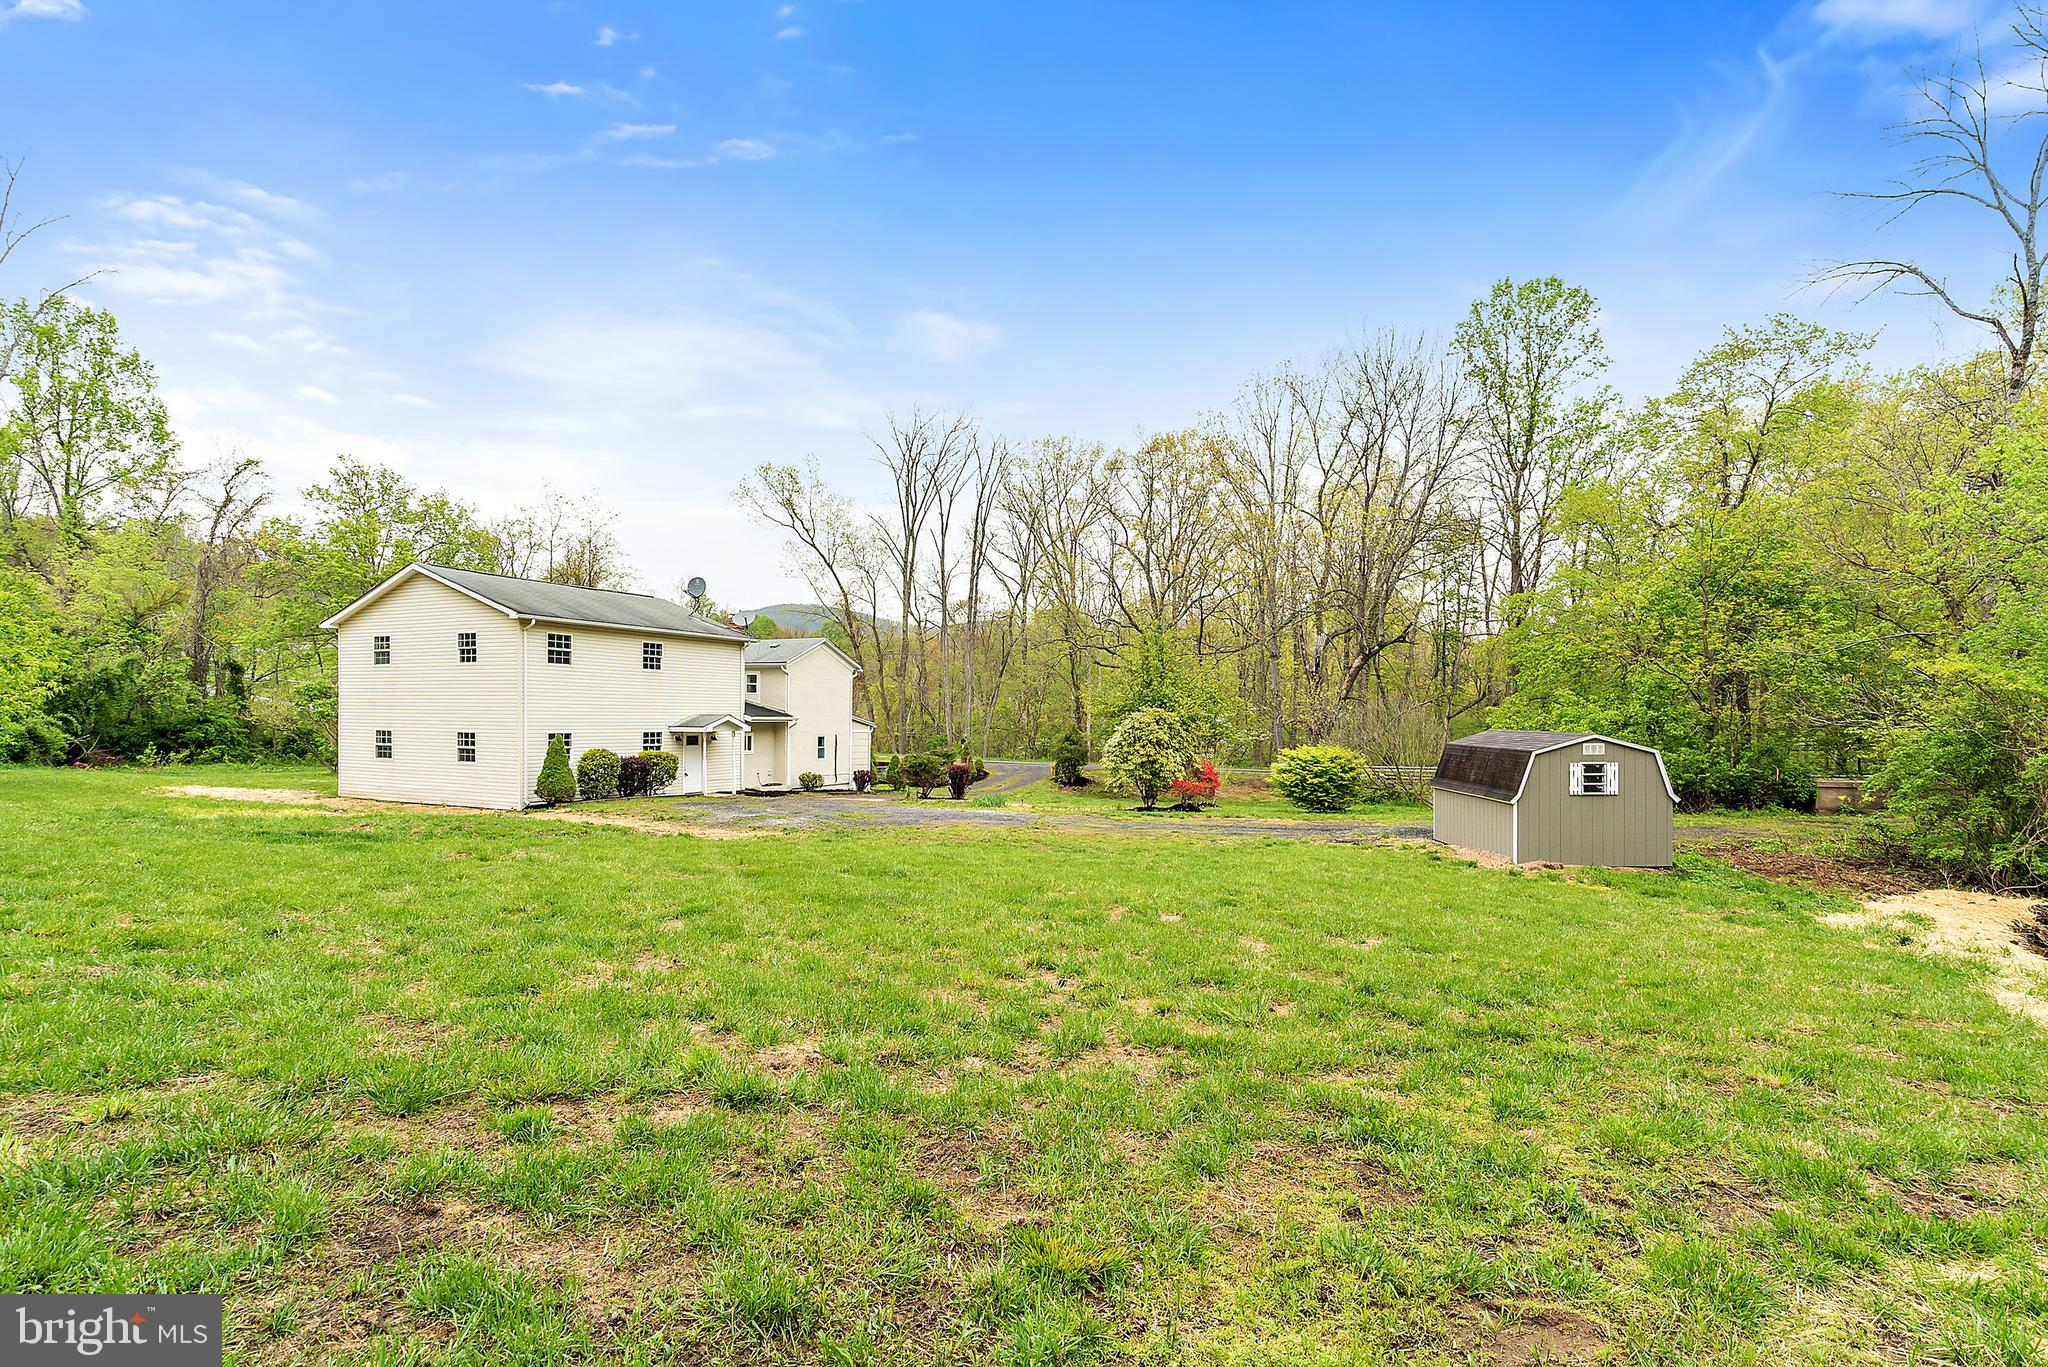 1817 Zachary Taylor Highway, Huntly, VA 22640